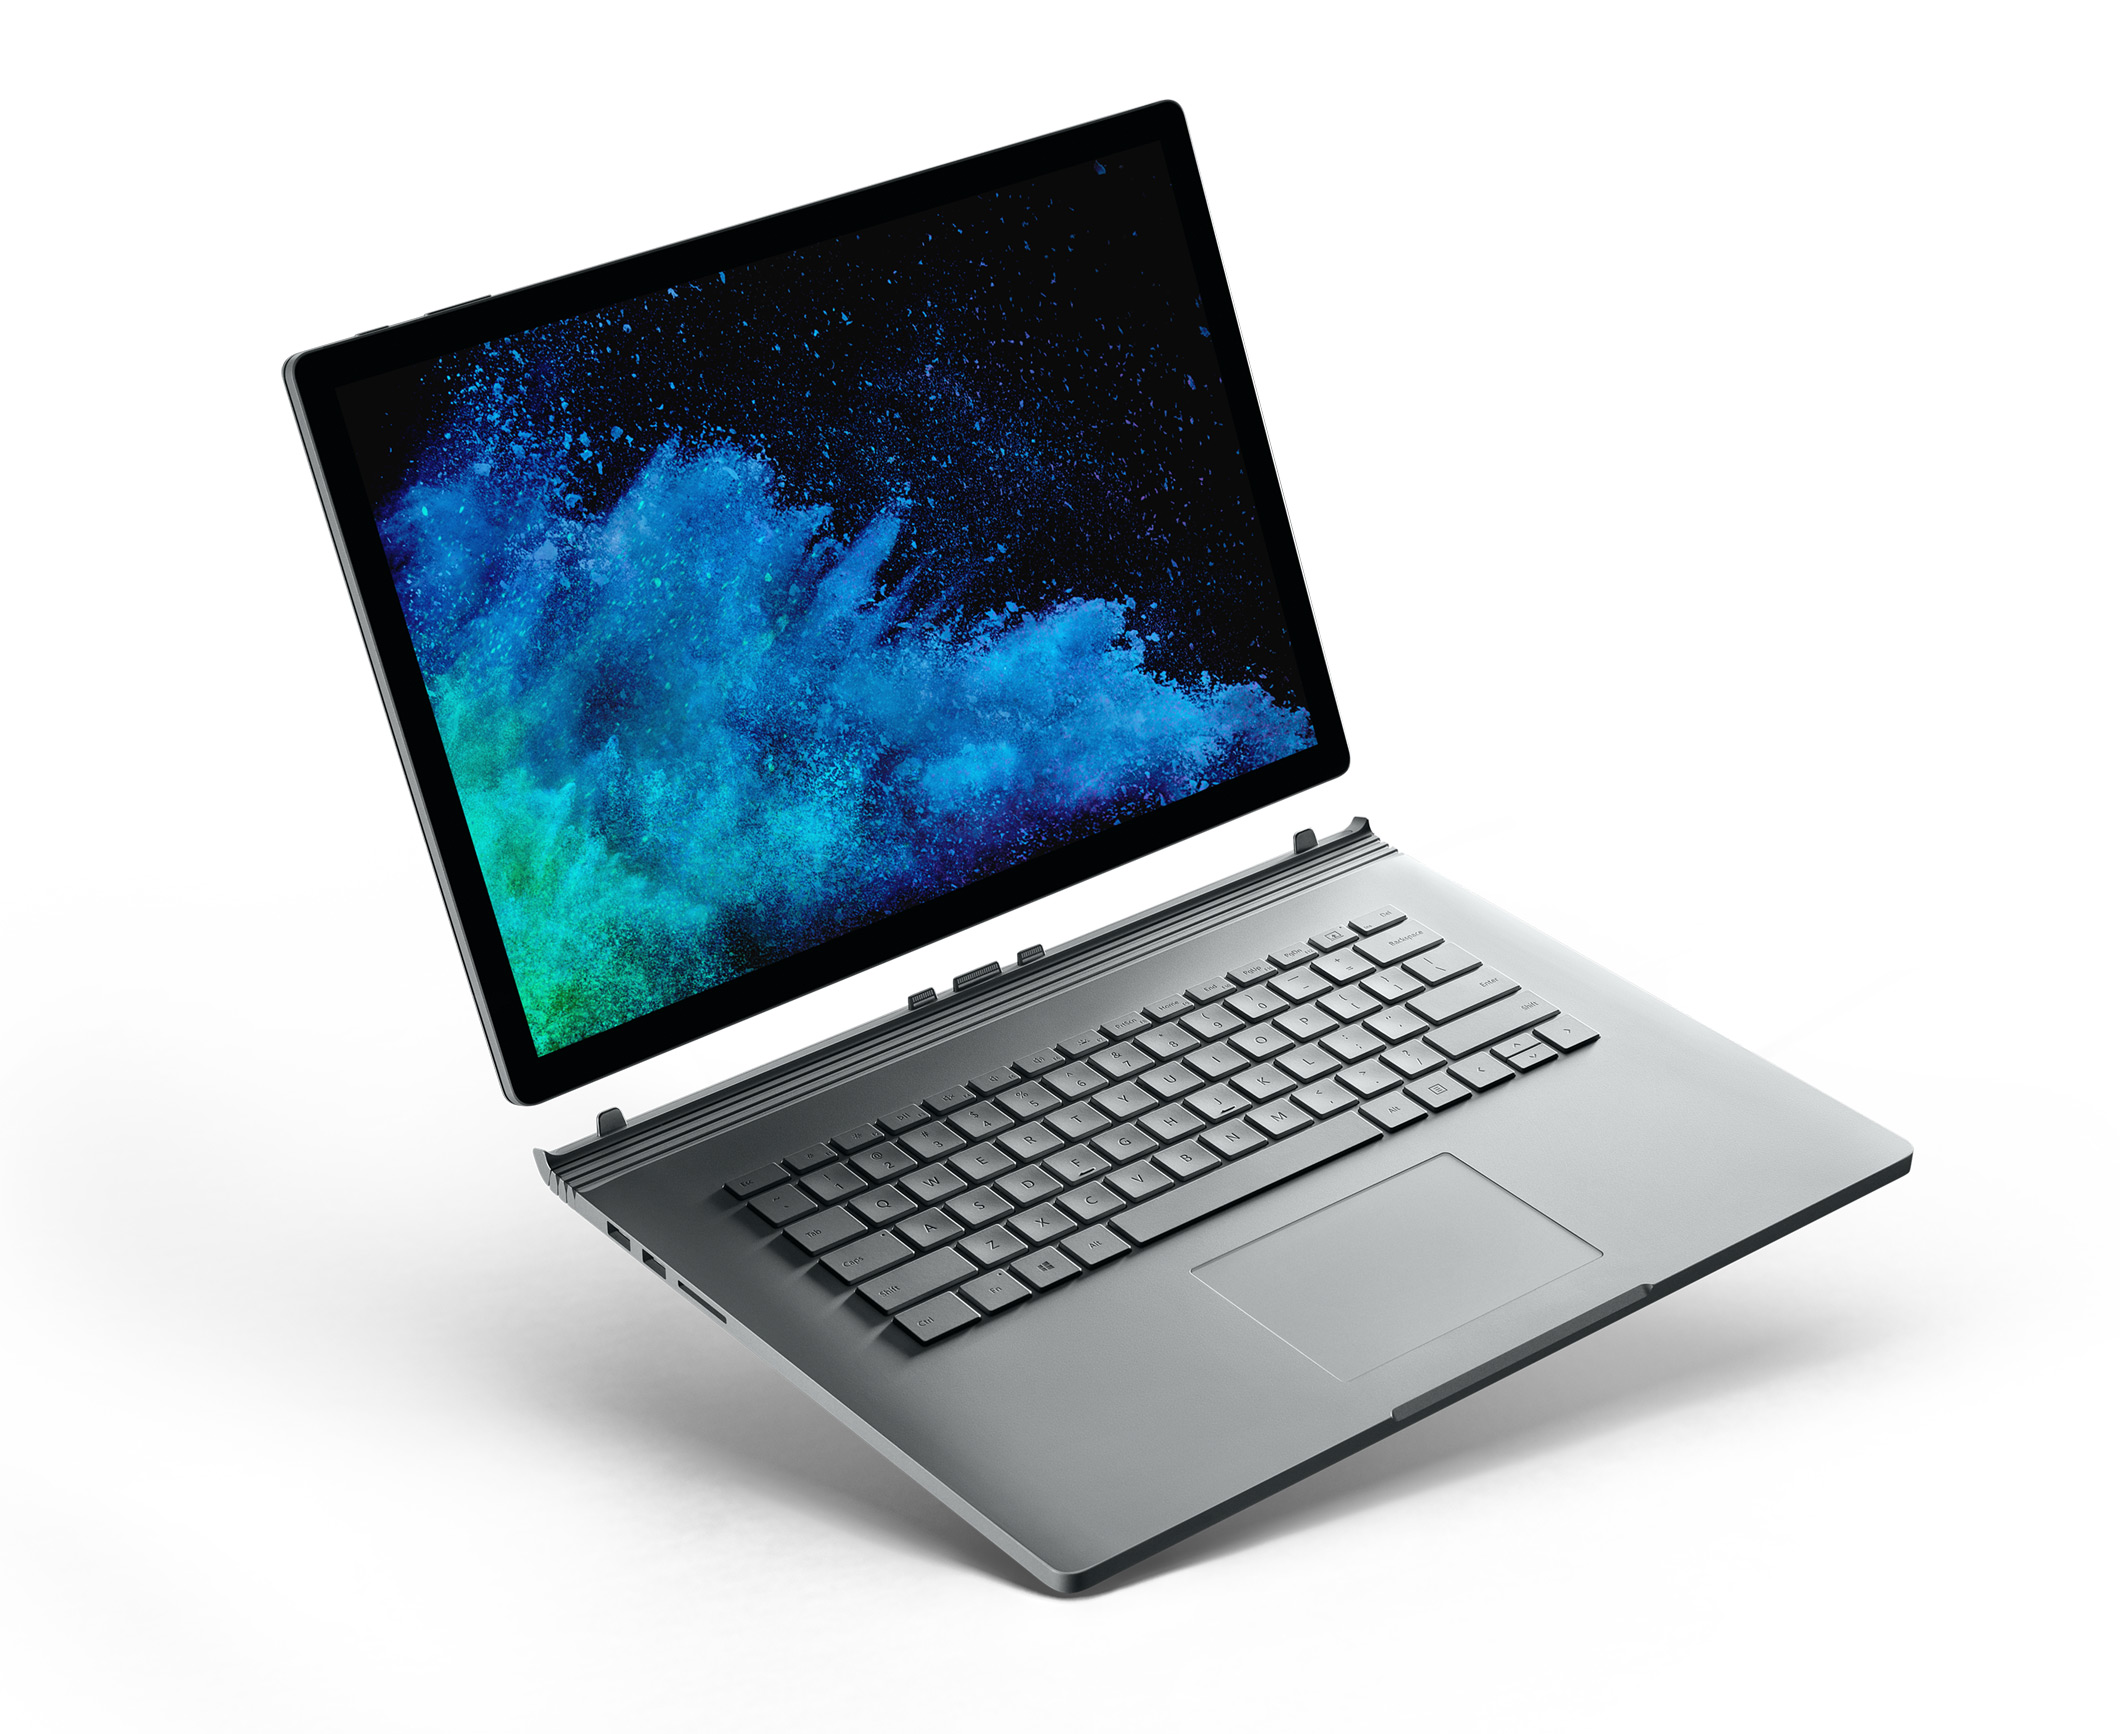 Surface Book 2 with screen detatched